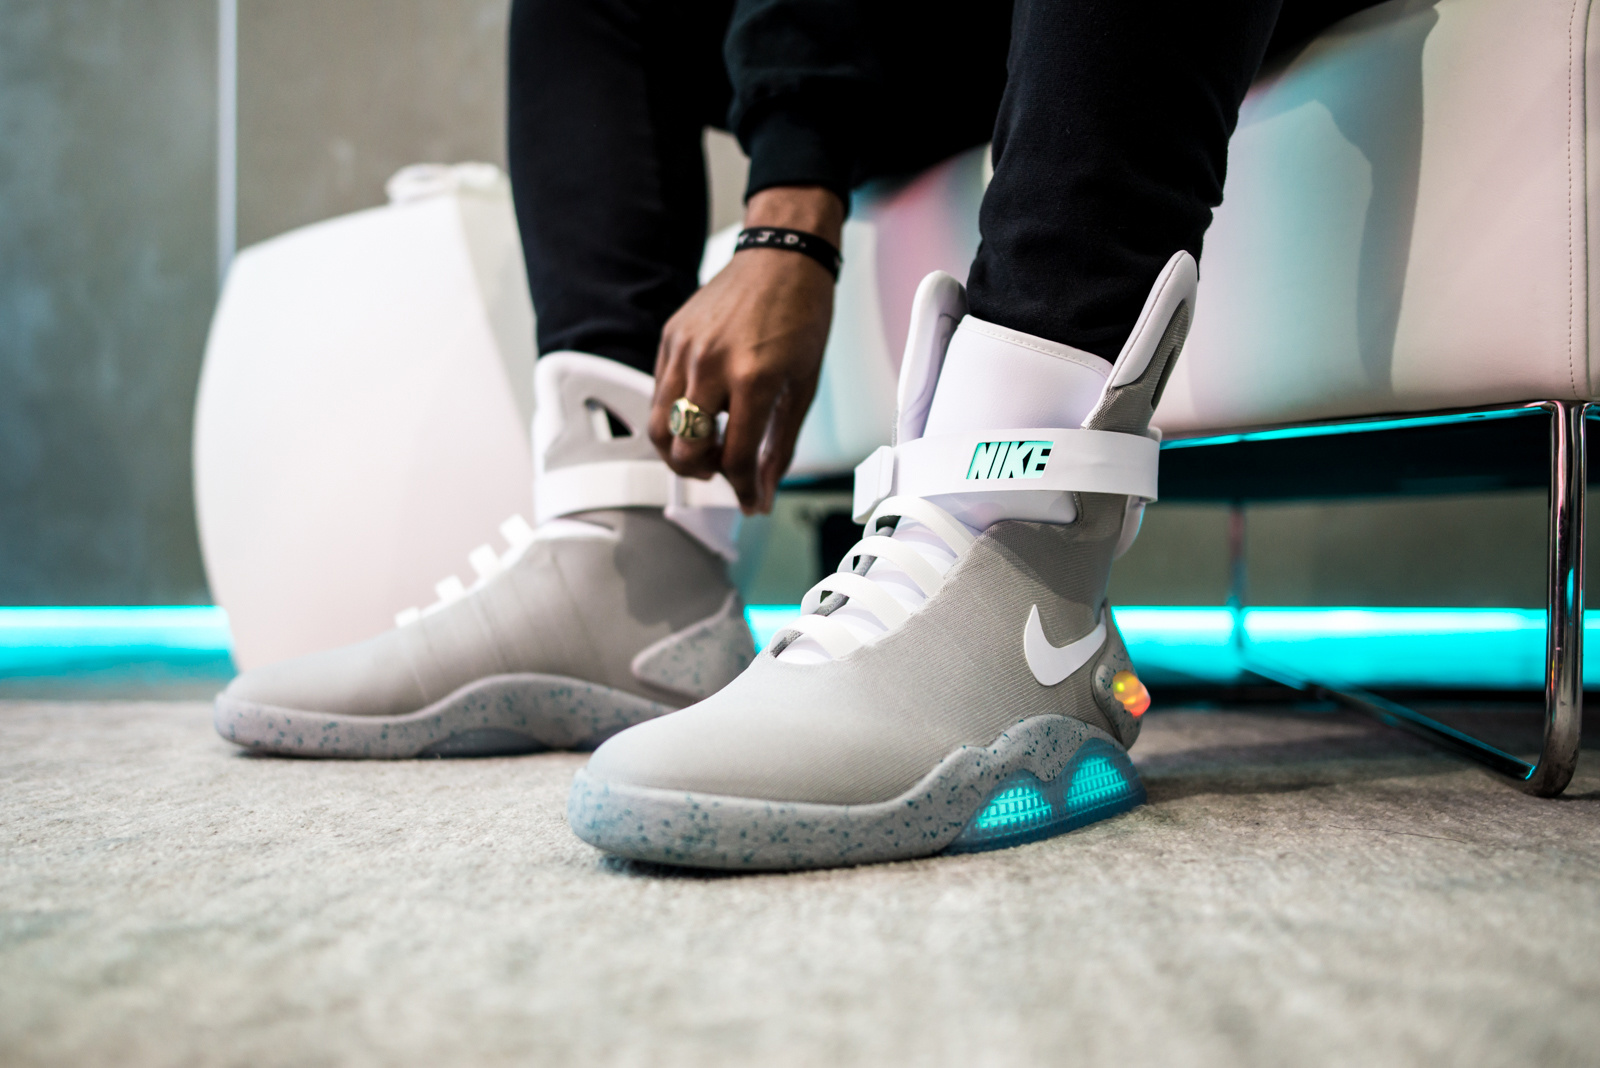 Big Star's 'Just To Flex' (Remix) Dropped [Listen] nike air mag experience 7